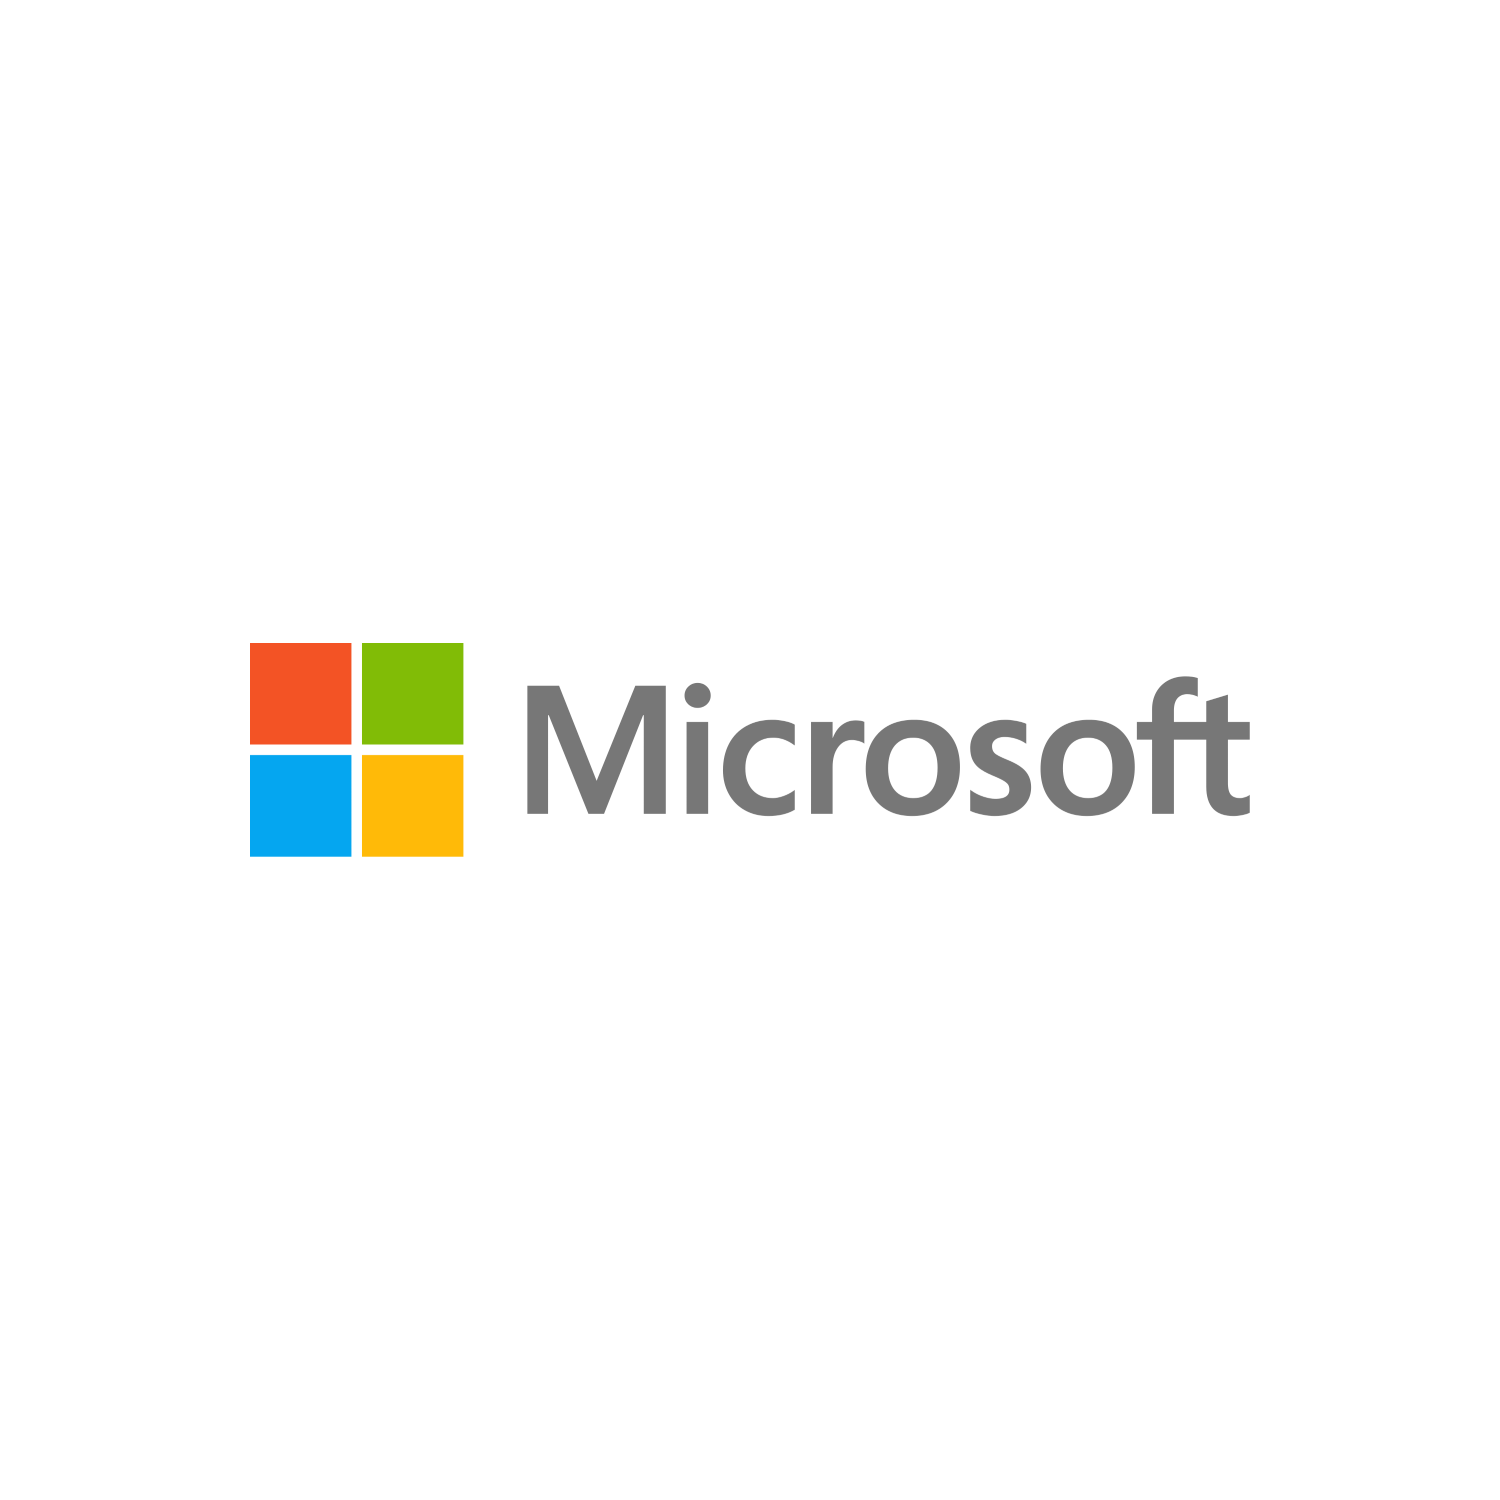 Buy Microsoft Certified Professional Mcp Class Pack Certification